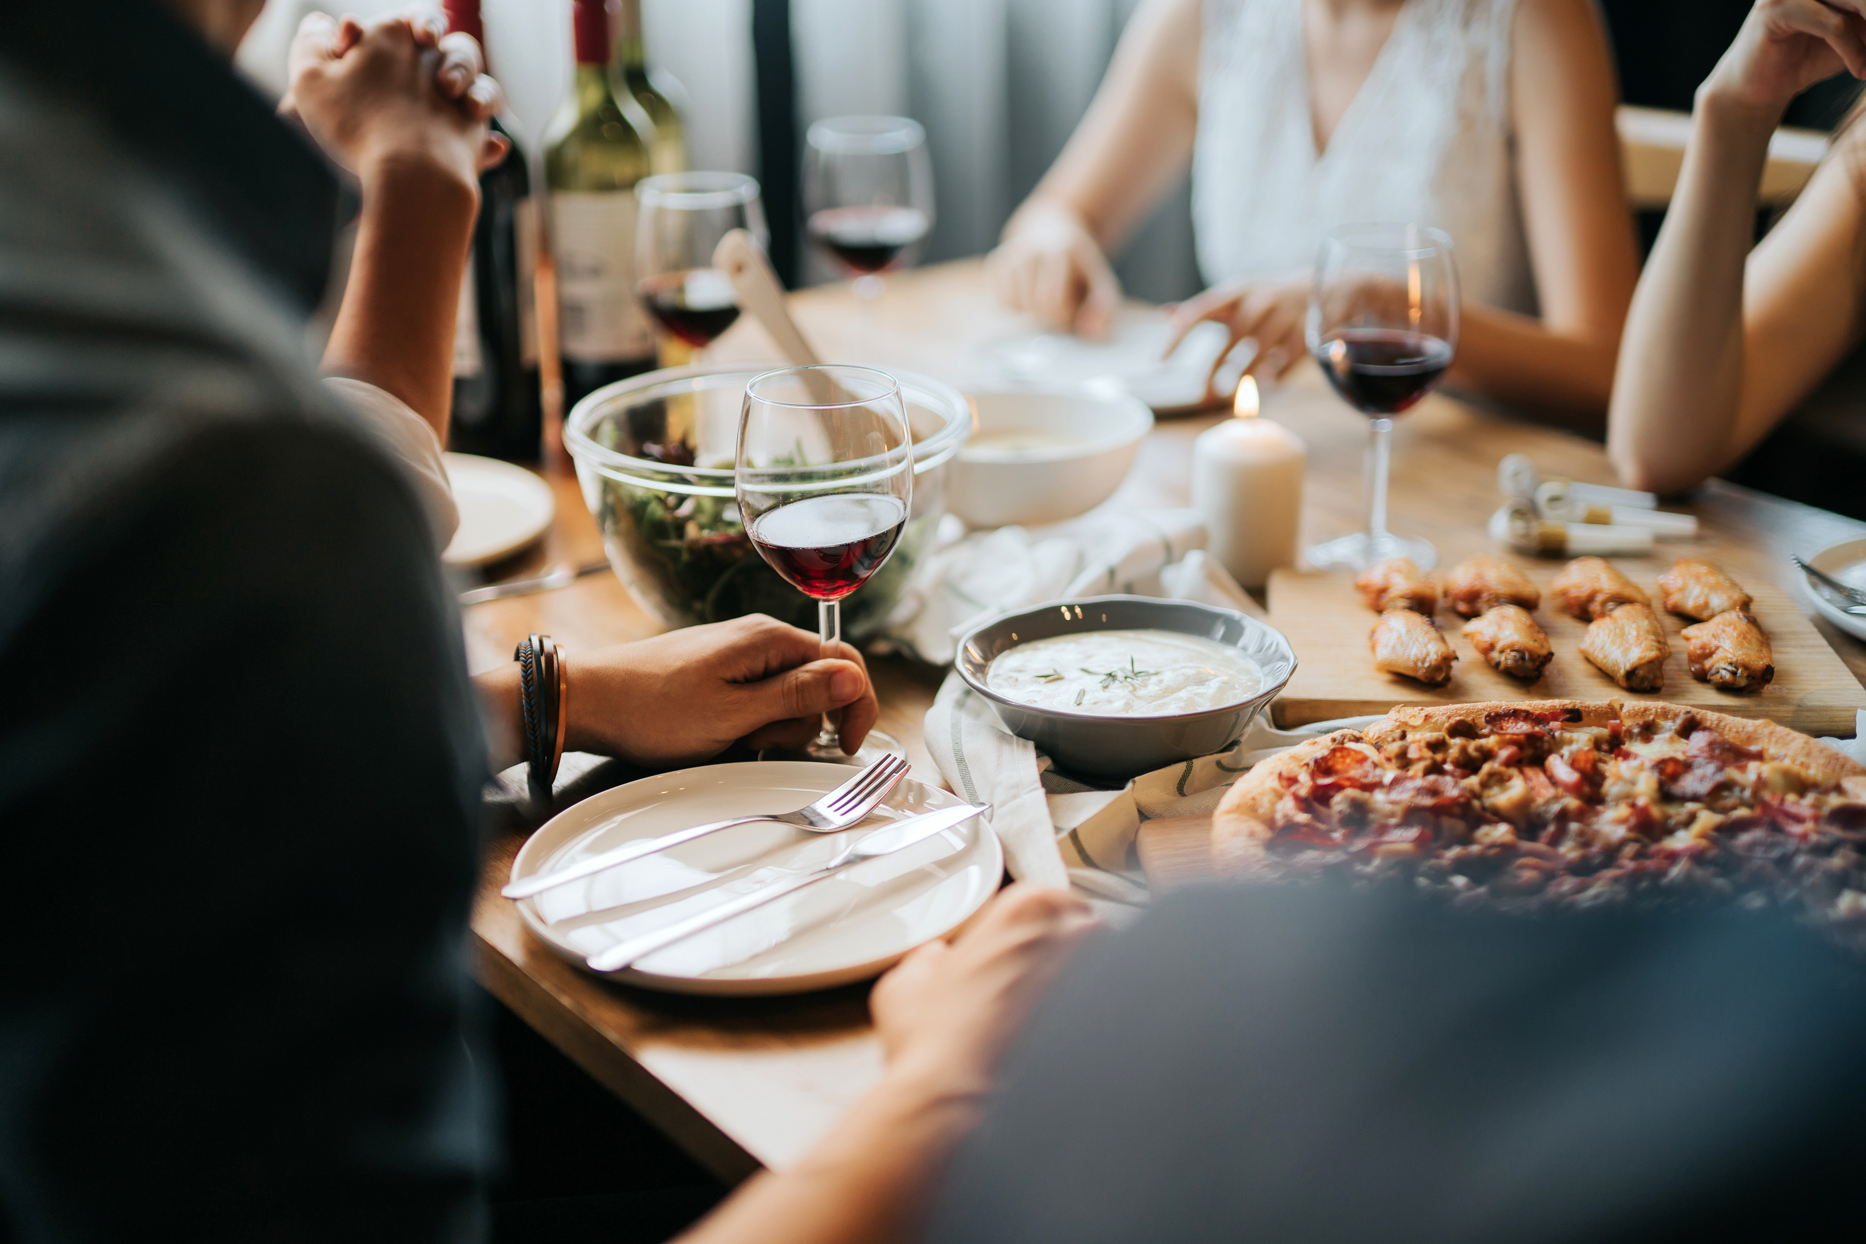 group of people sitting at table with wine glasses and various dinner foods